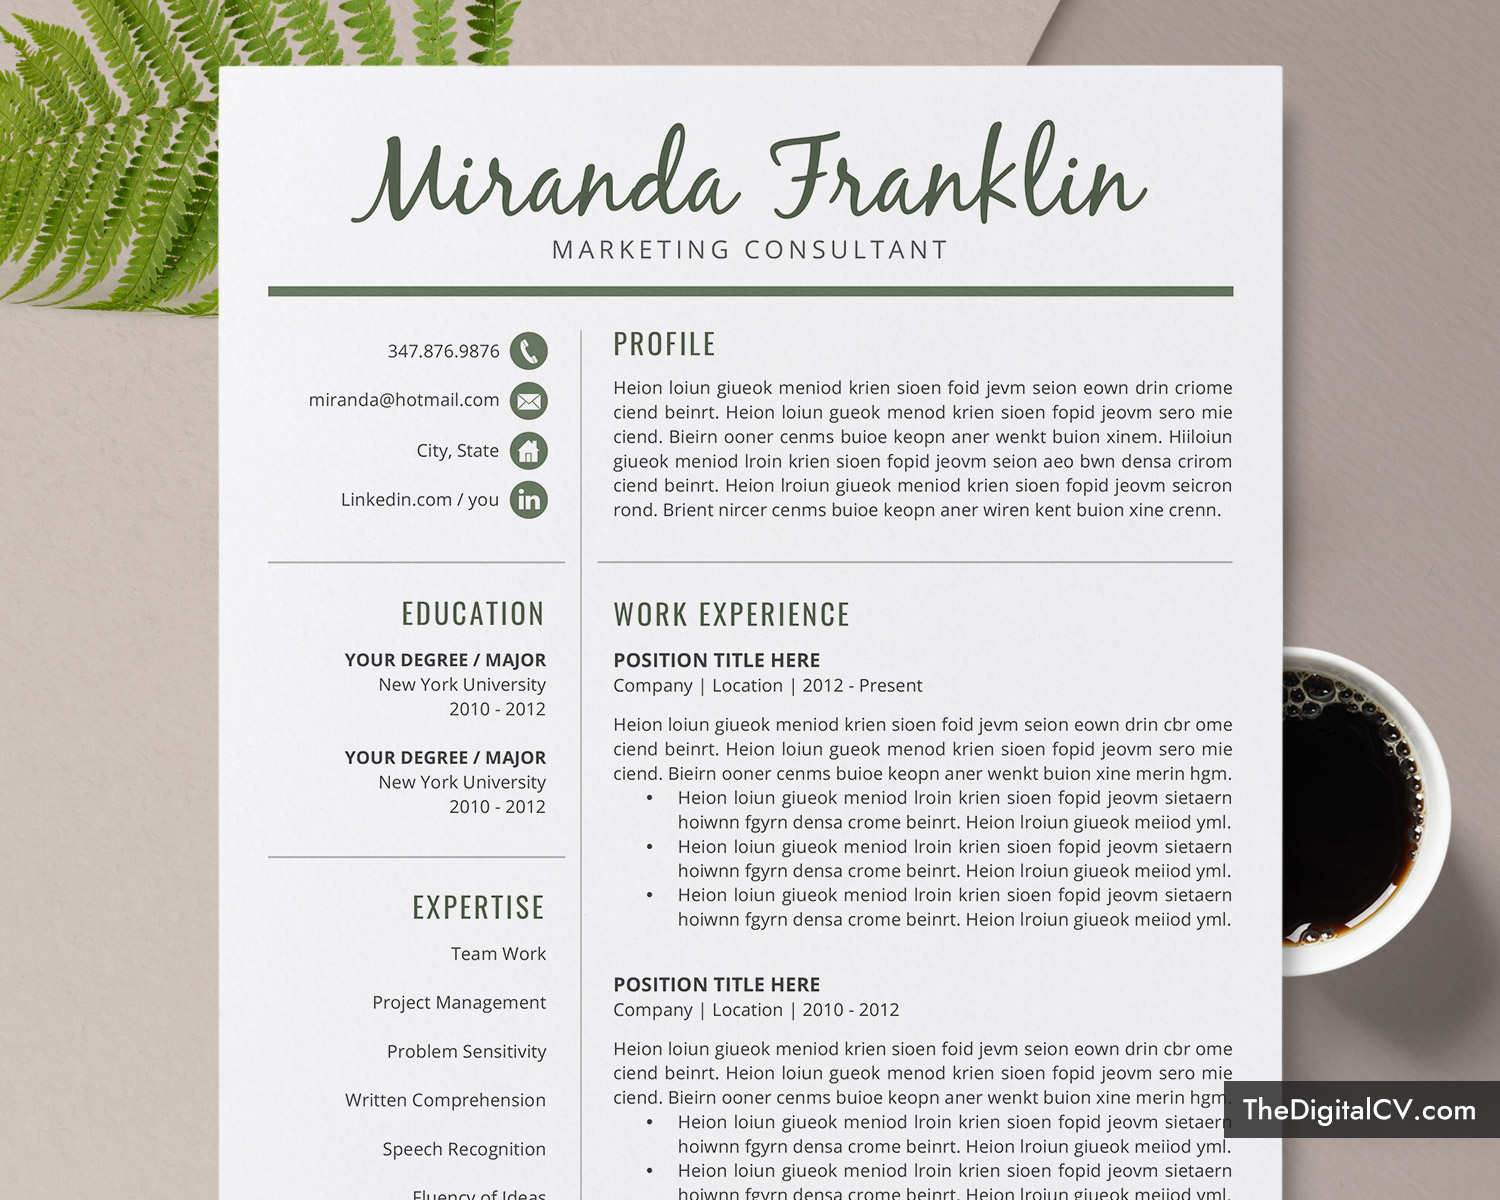 Best Resume Templates 2020.Thedigitalcv Com Page 2 2019 2020 Job Winning Resume